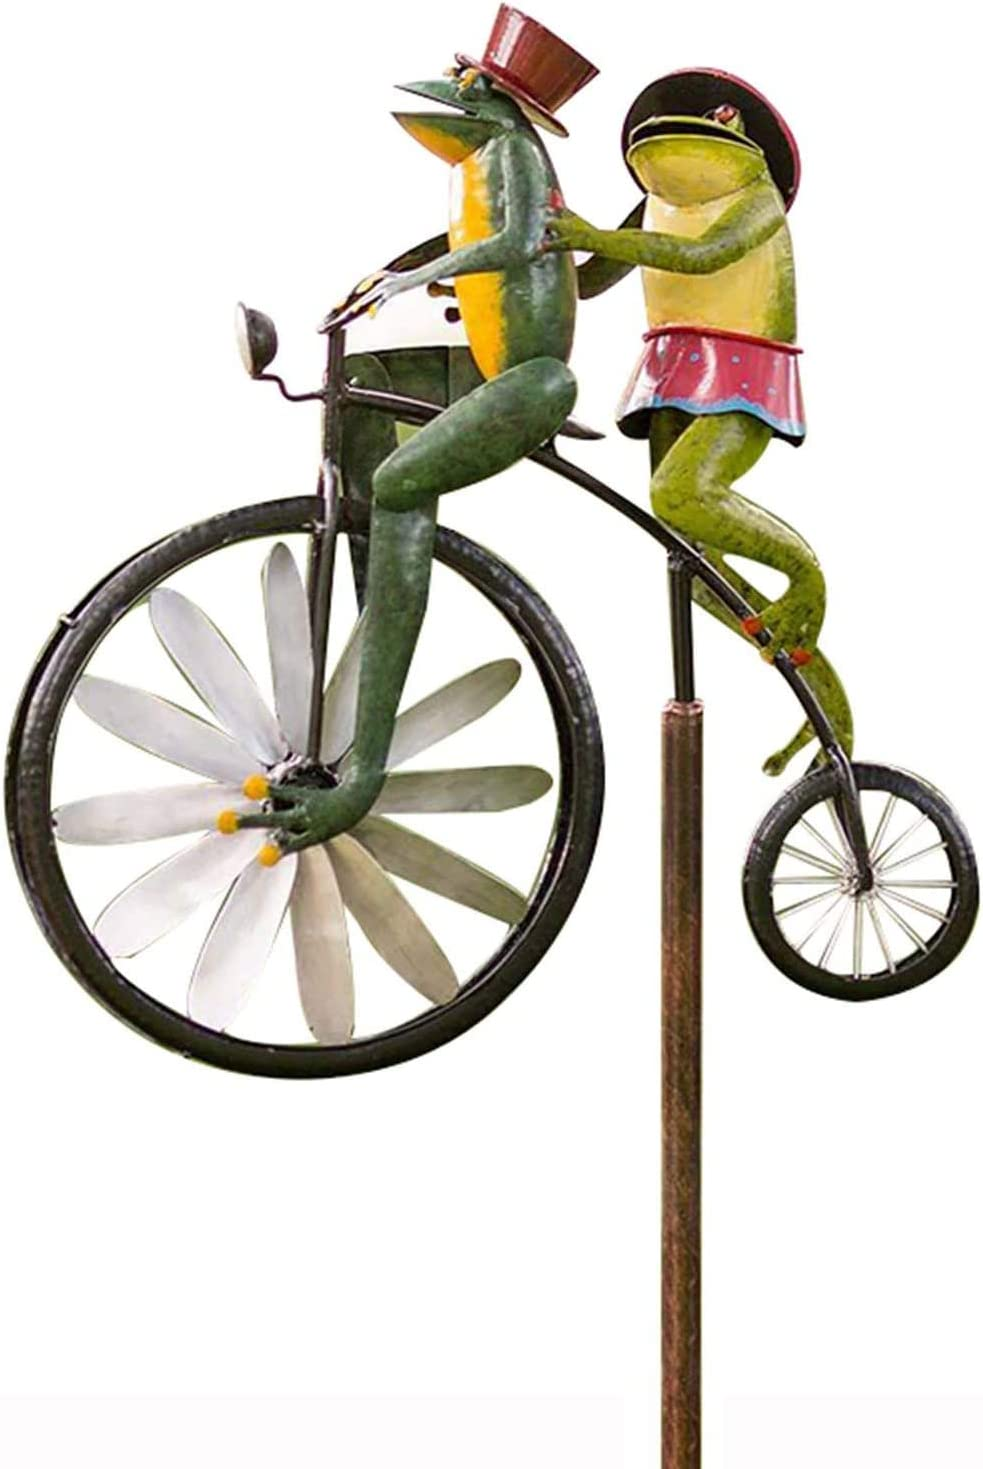 Bicycle Garden Spinner Solar Wind Spinner Metal Frogs Wind Sculptures Windmills for The Yard Art Wind Spinner Garden Decorations Outdoor Yard Patio Lawn for Animal Sculpture Wind Catchers Frog